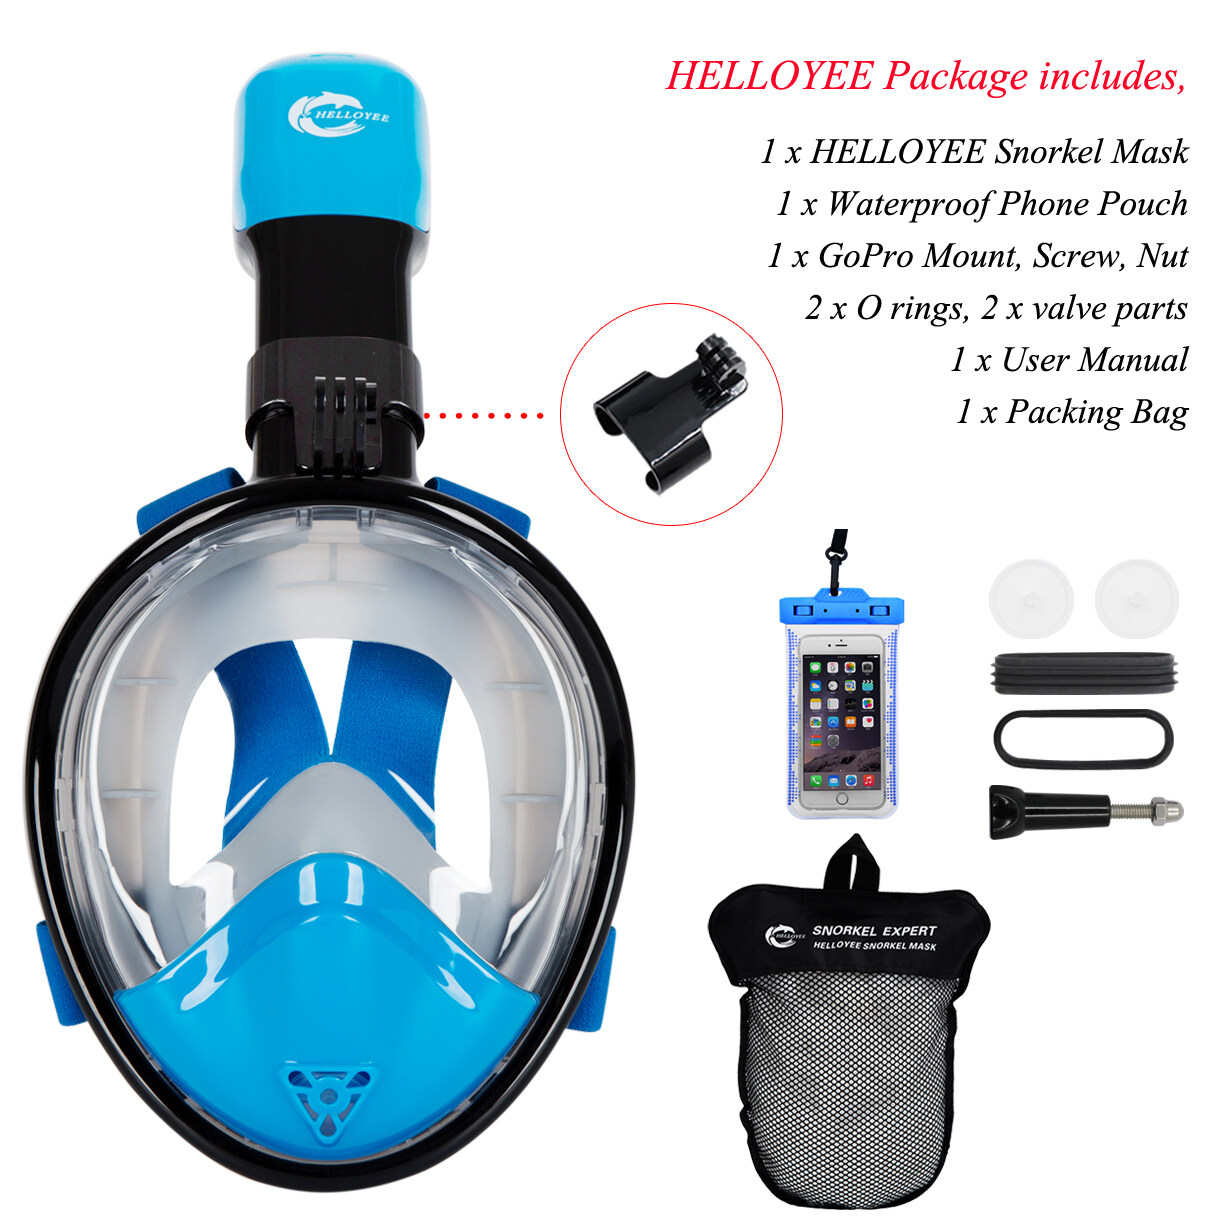 HELLOYEE Full Face Snorkel Mask 180° Panoramic View Breathe Free Snorkeling Mask For Kids 1